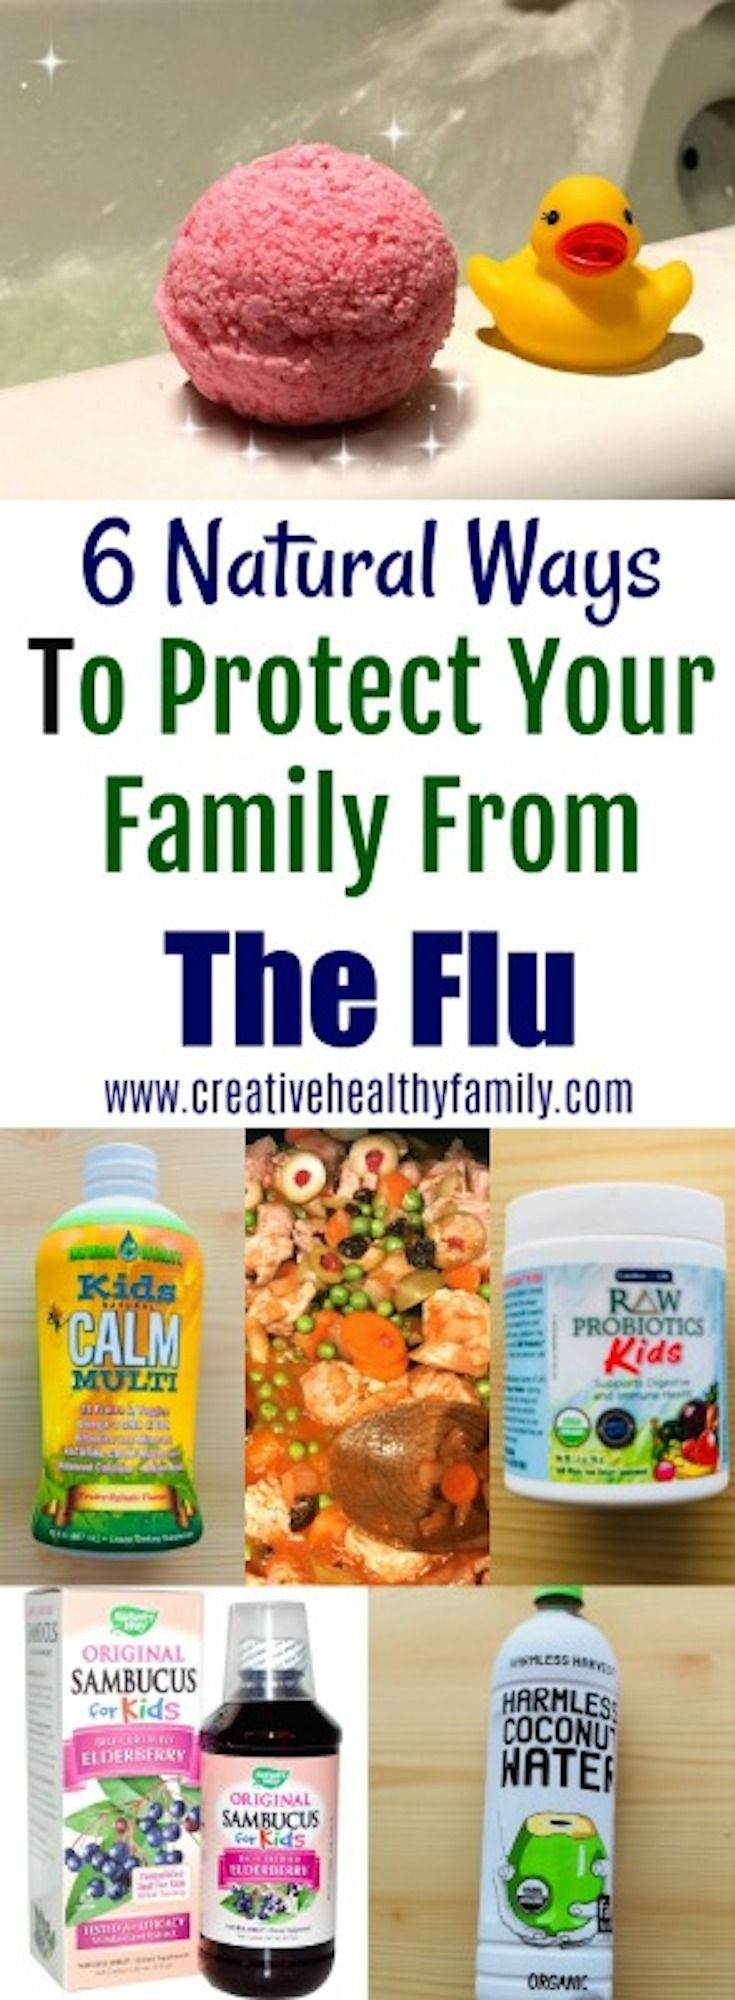 6 Natural Ways To Protect Your Family From The Flu 1